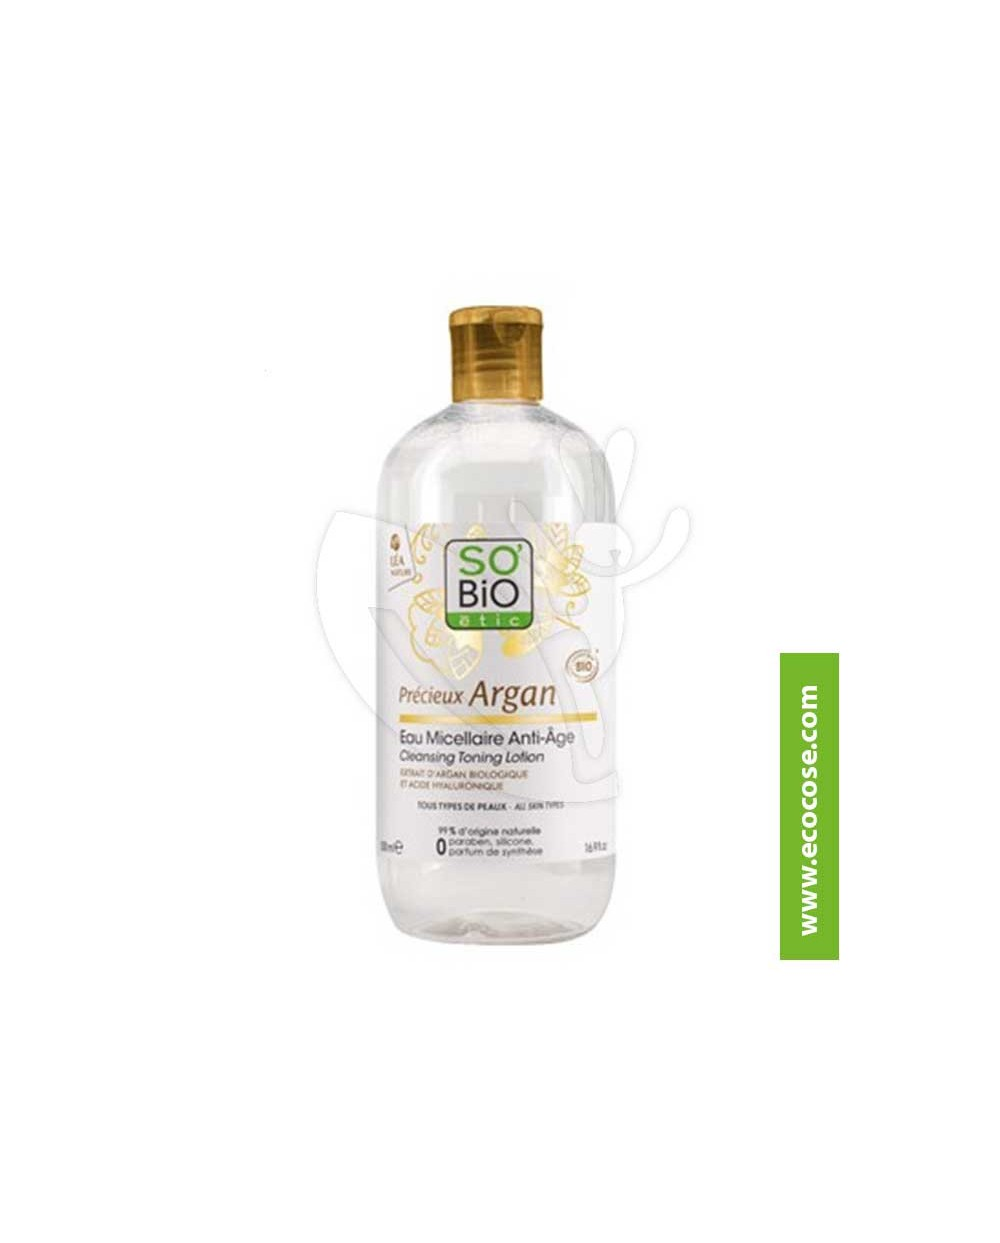 So' Bio Étic - Argan - Acqua Micellare ANTIAGE